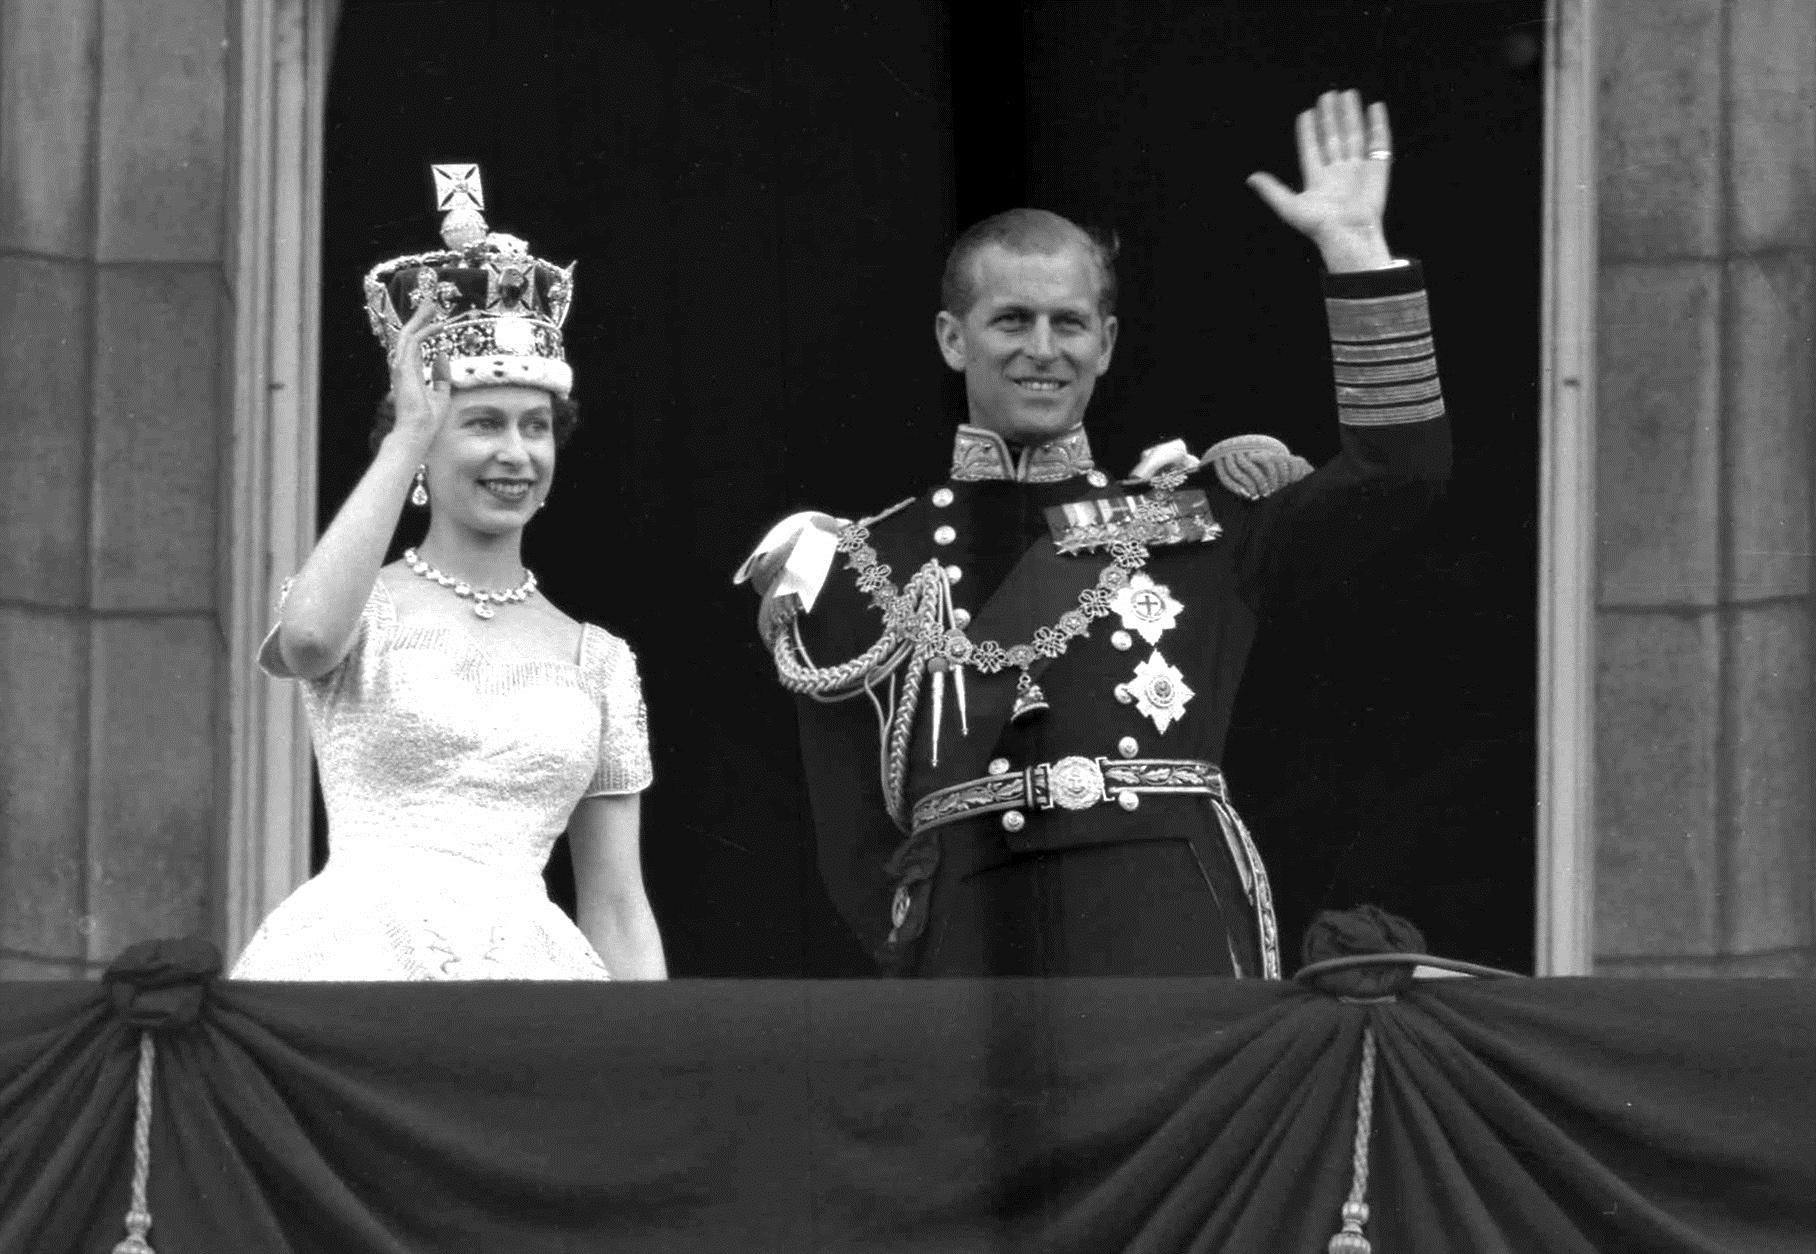 FILE - This is a June. 2, 1953 file photo of Britain's Queen Elizabeth II and Prince Philip, Duke of Edinburgh, as they wave to supporters from the balcony at Buckingham Palace, following her coronation at Westminster Abbey. London. At the age of 96, Britain's Prince Philip on Wednesday Aug. 2, 2017 retires from solo official duties. Over the decades he has become renowned for his stalwart support of his wife, Queen Elizabeth II. (AP Photo/Leslie Priest, File)